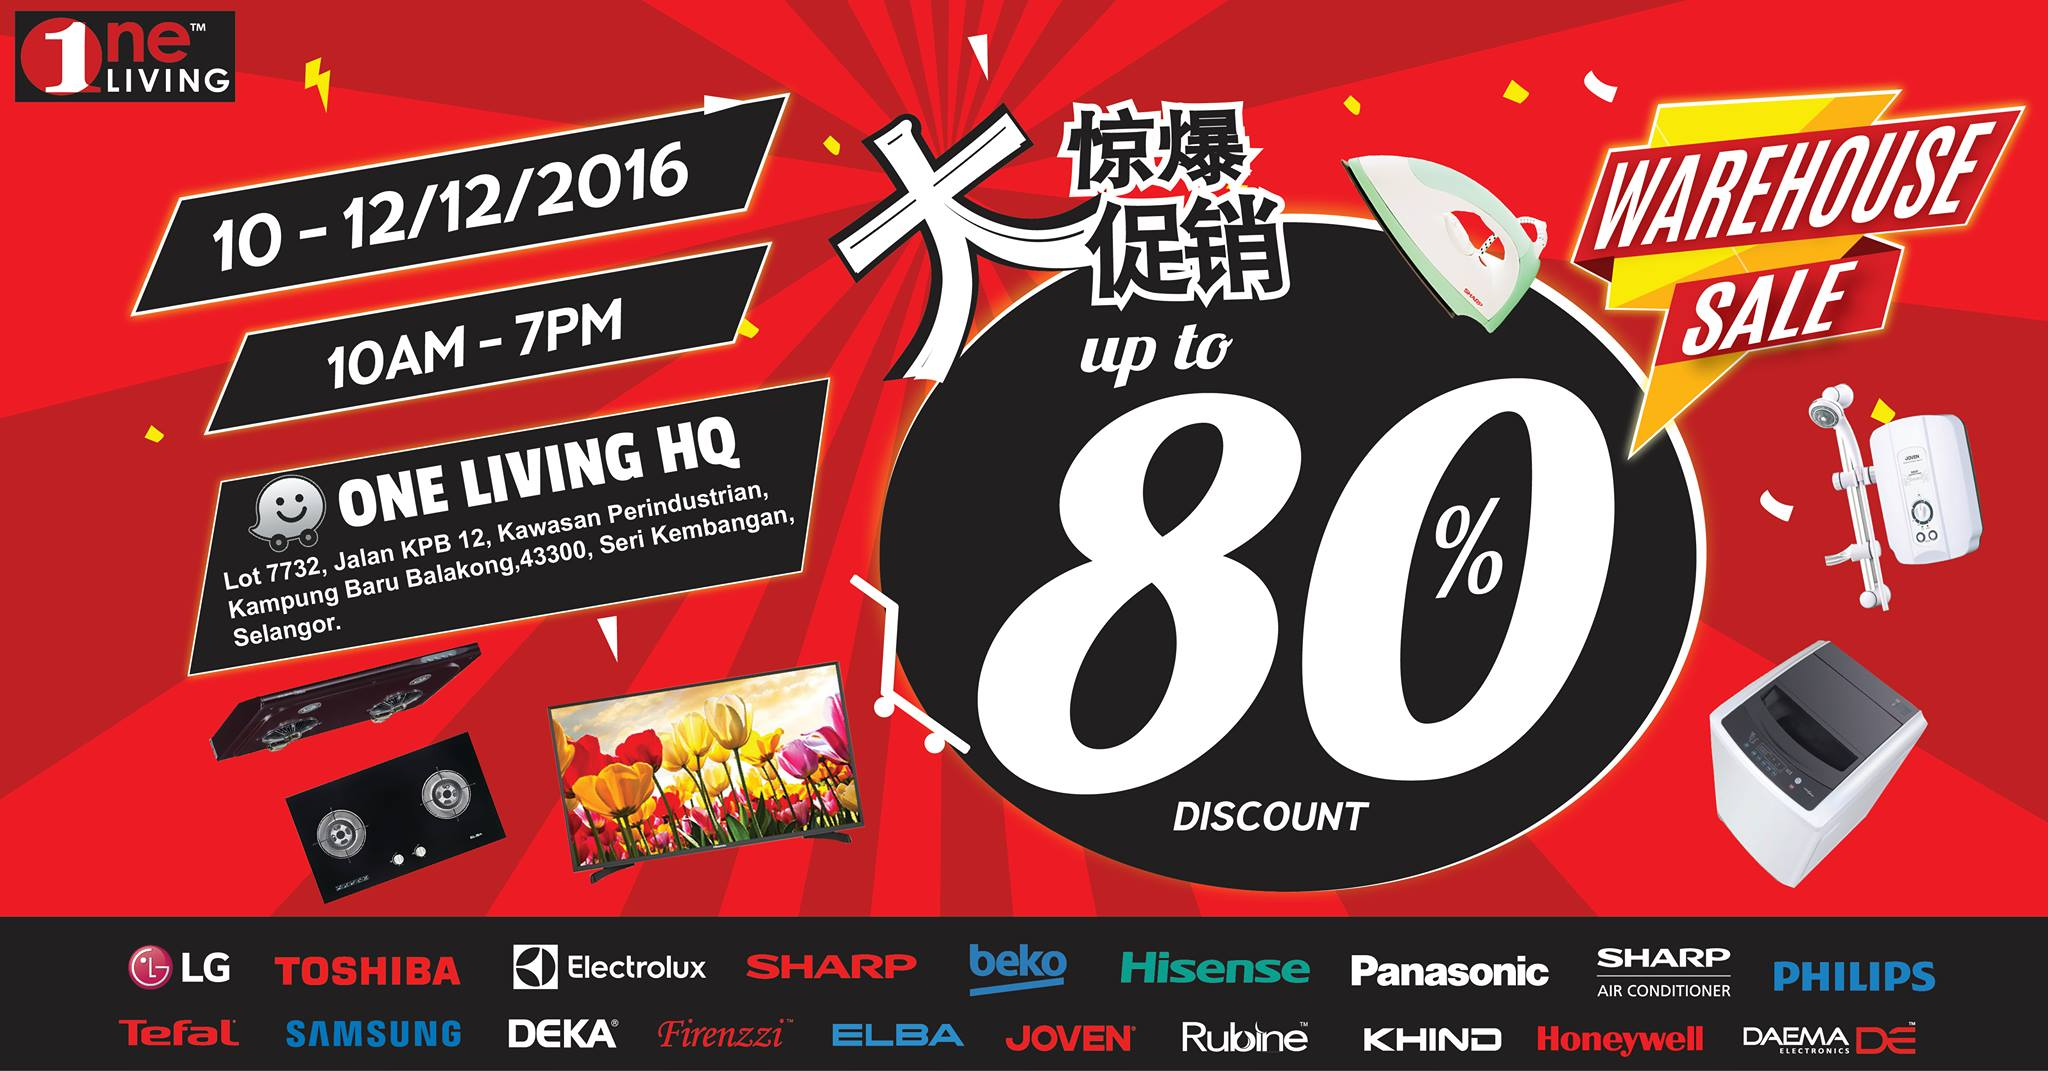 malaysia-warehouse-sale-year-end-one-living